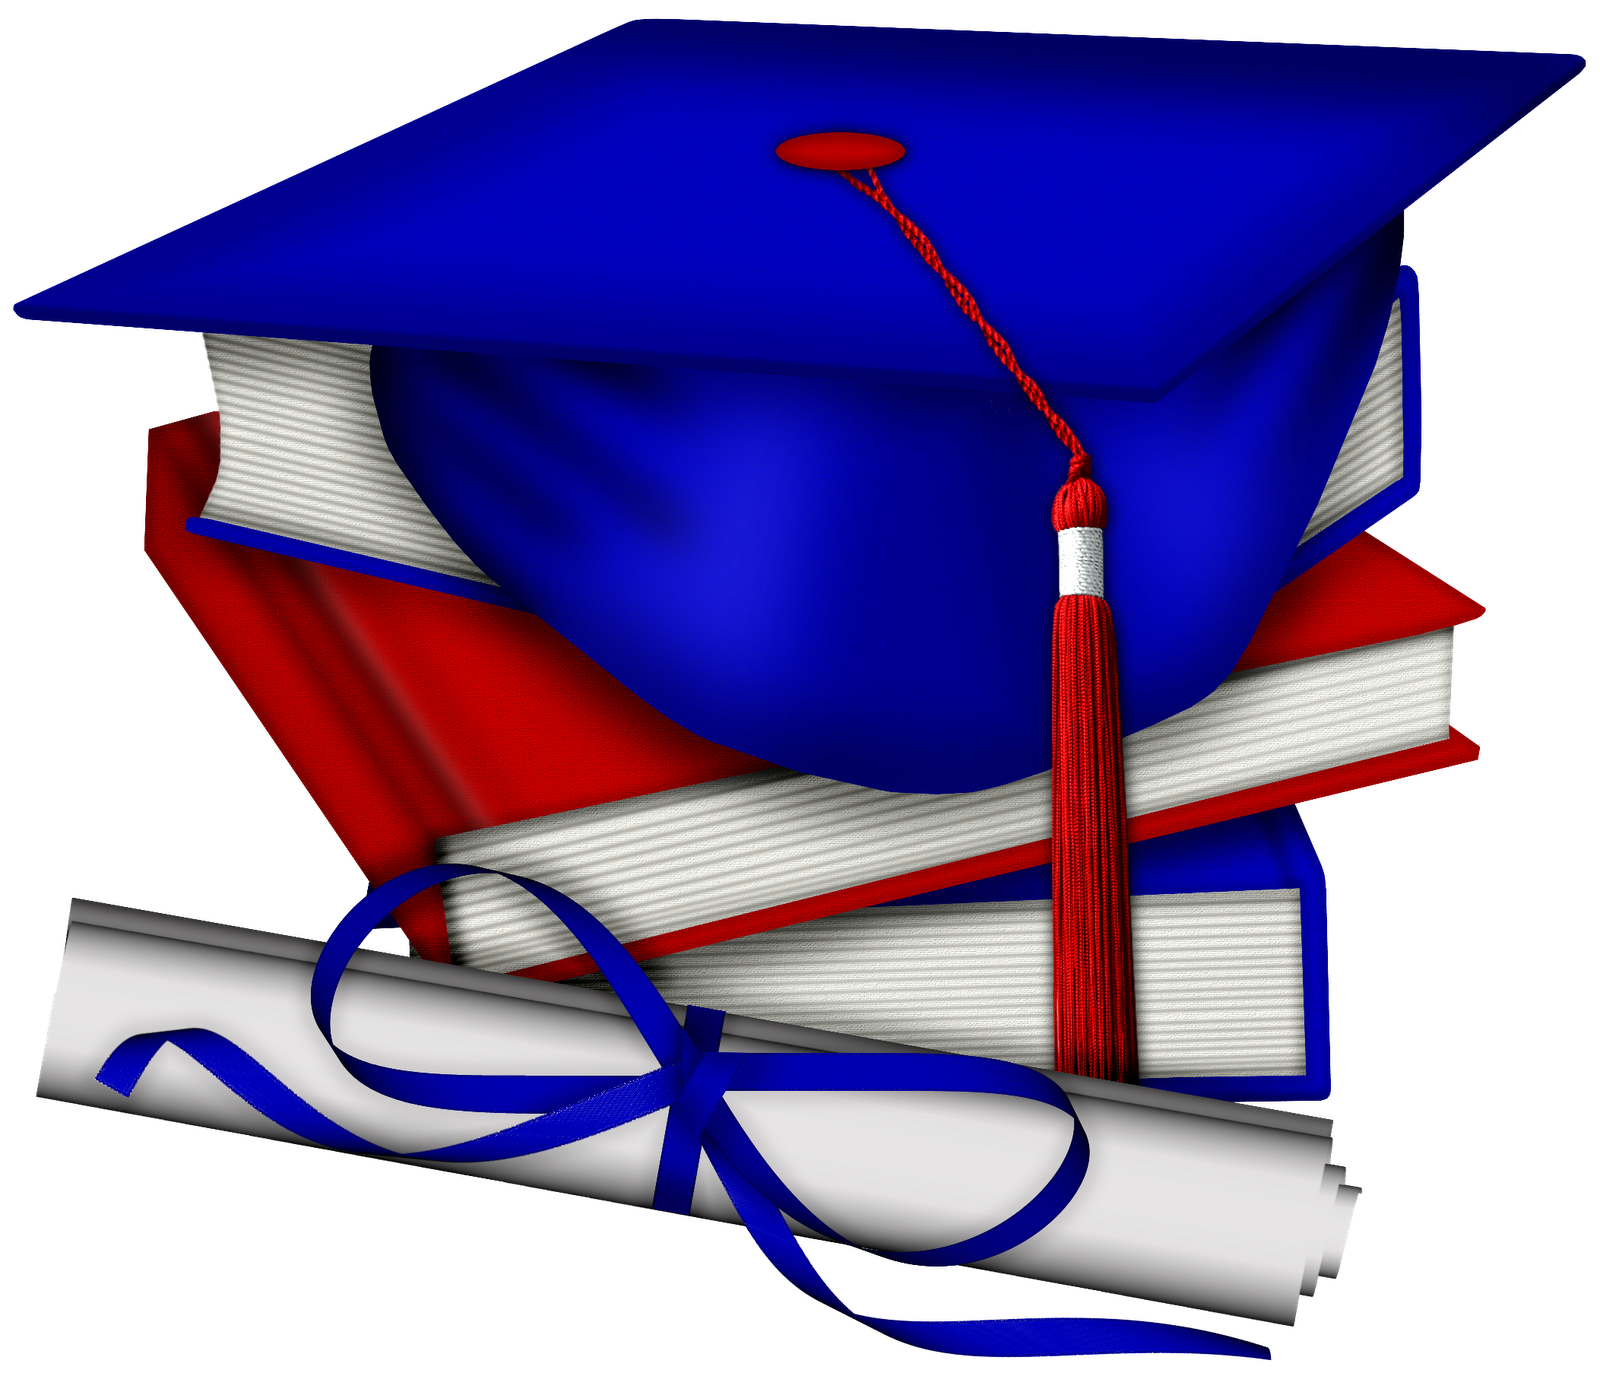 graduation scroll transparent - Google Search | goals | Pinterest ...